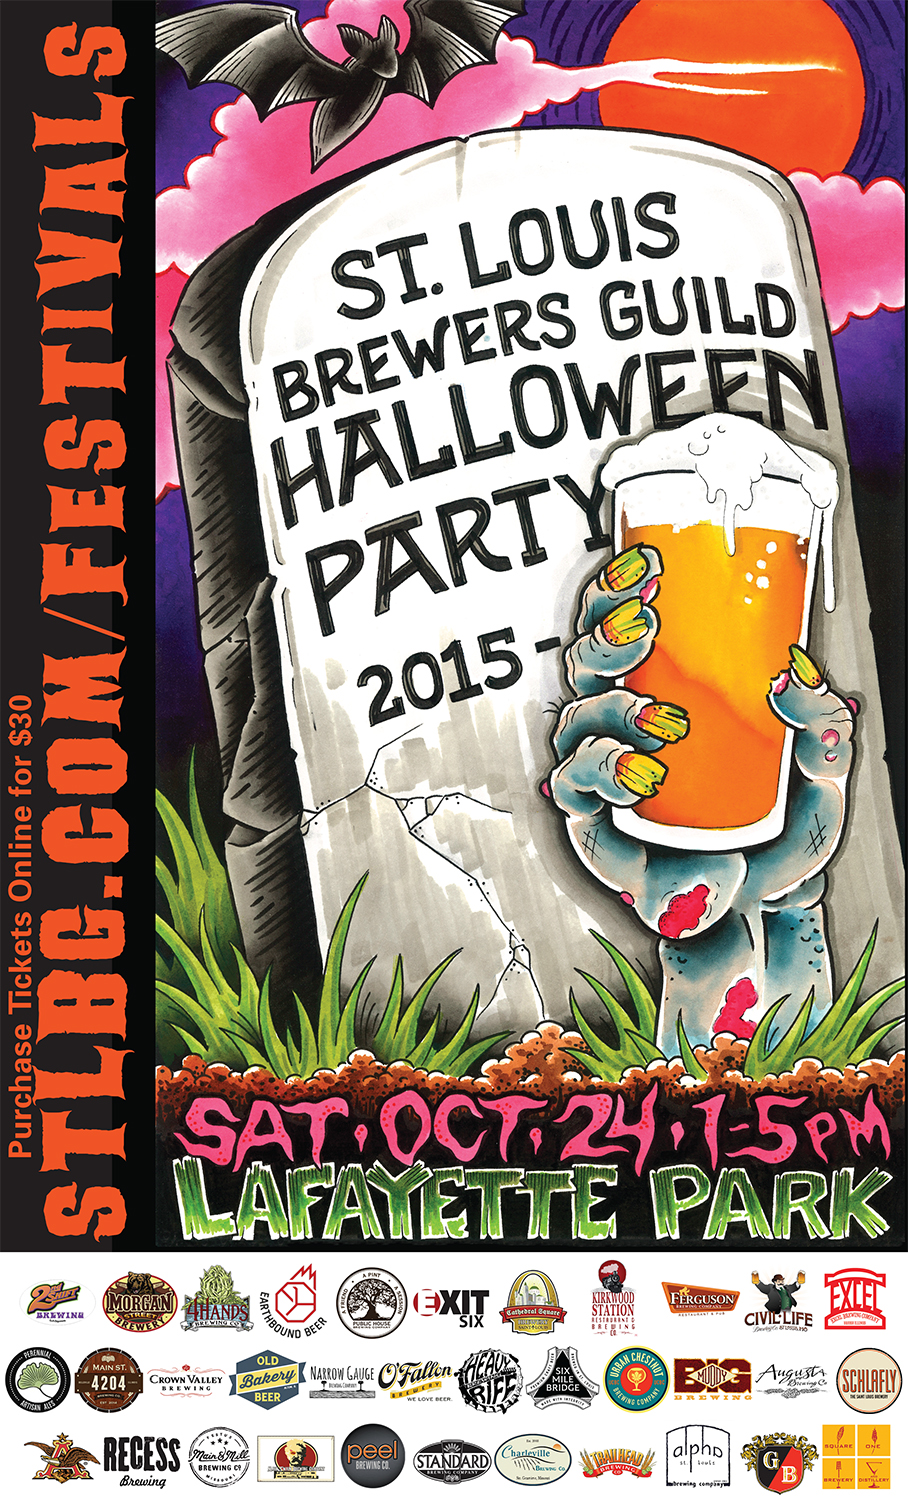 stl brewers guild halloween party oct 22 contests poster - Halloween Parties In St Louis